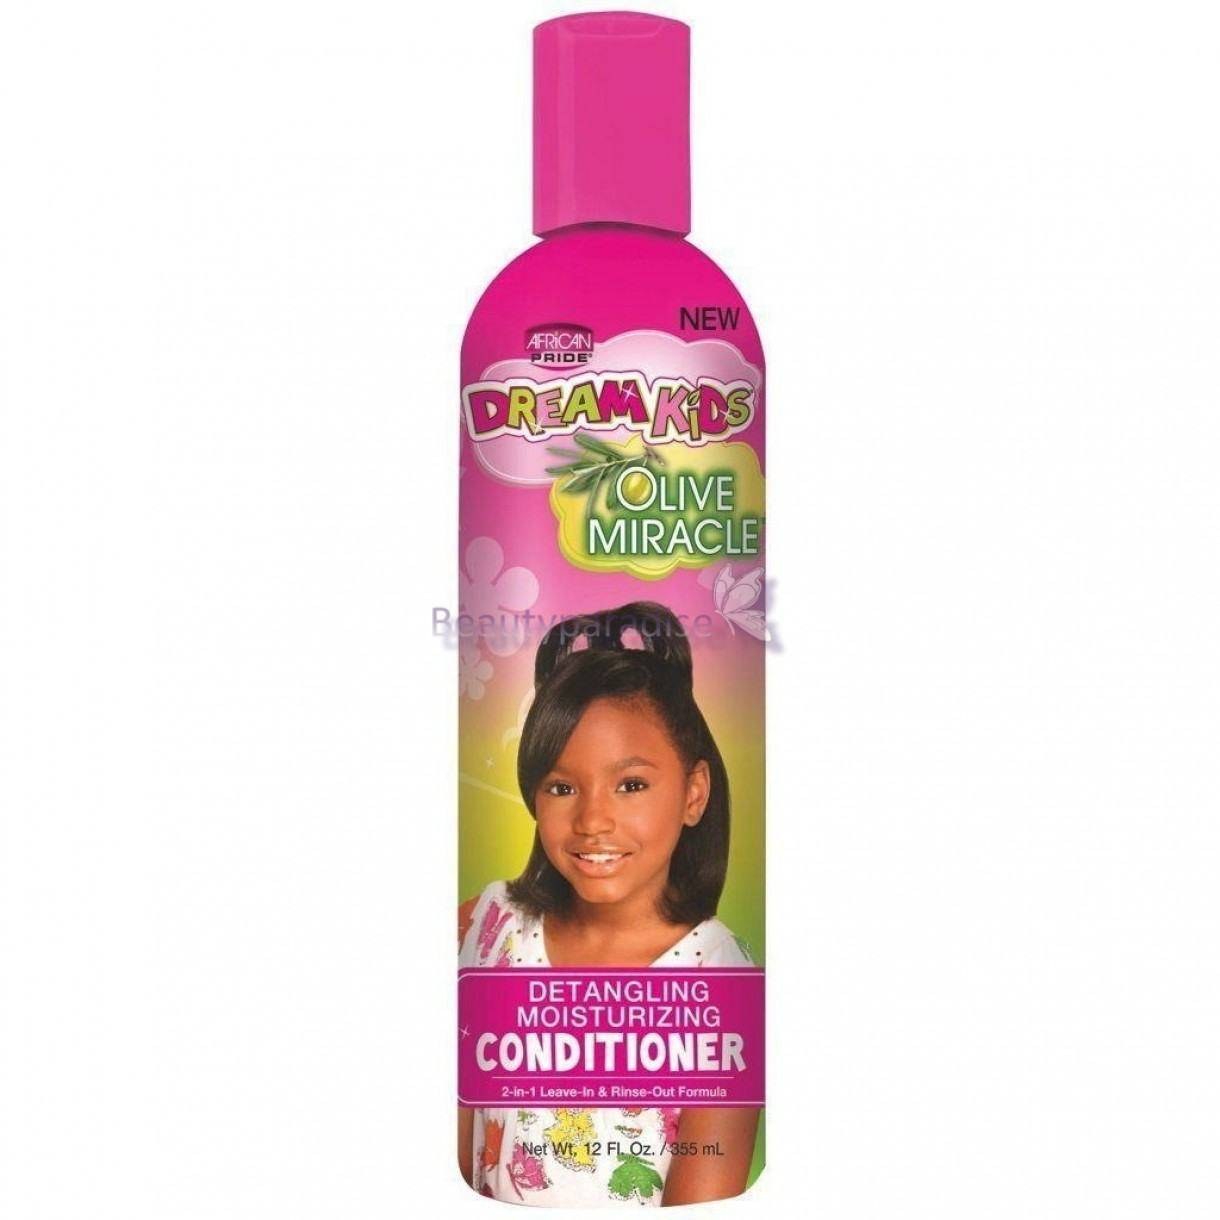 african-pride-dream-kids-olive-miracle-detangling-moisturizing-conditioner-1220×1220